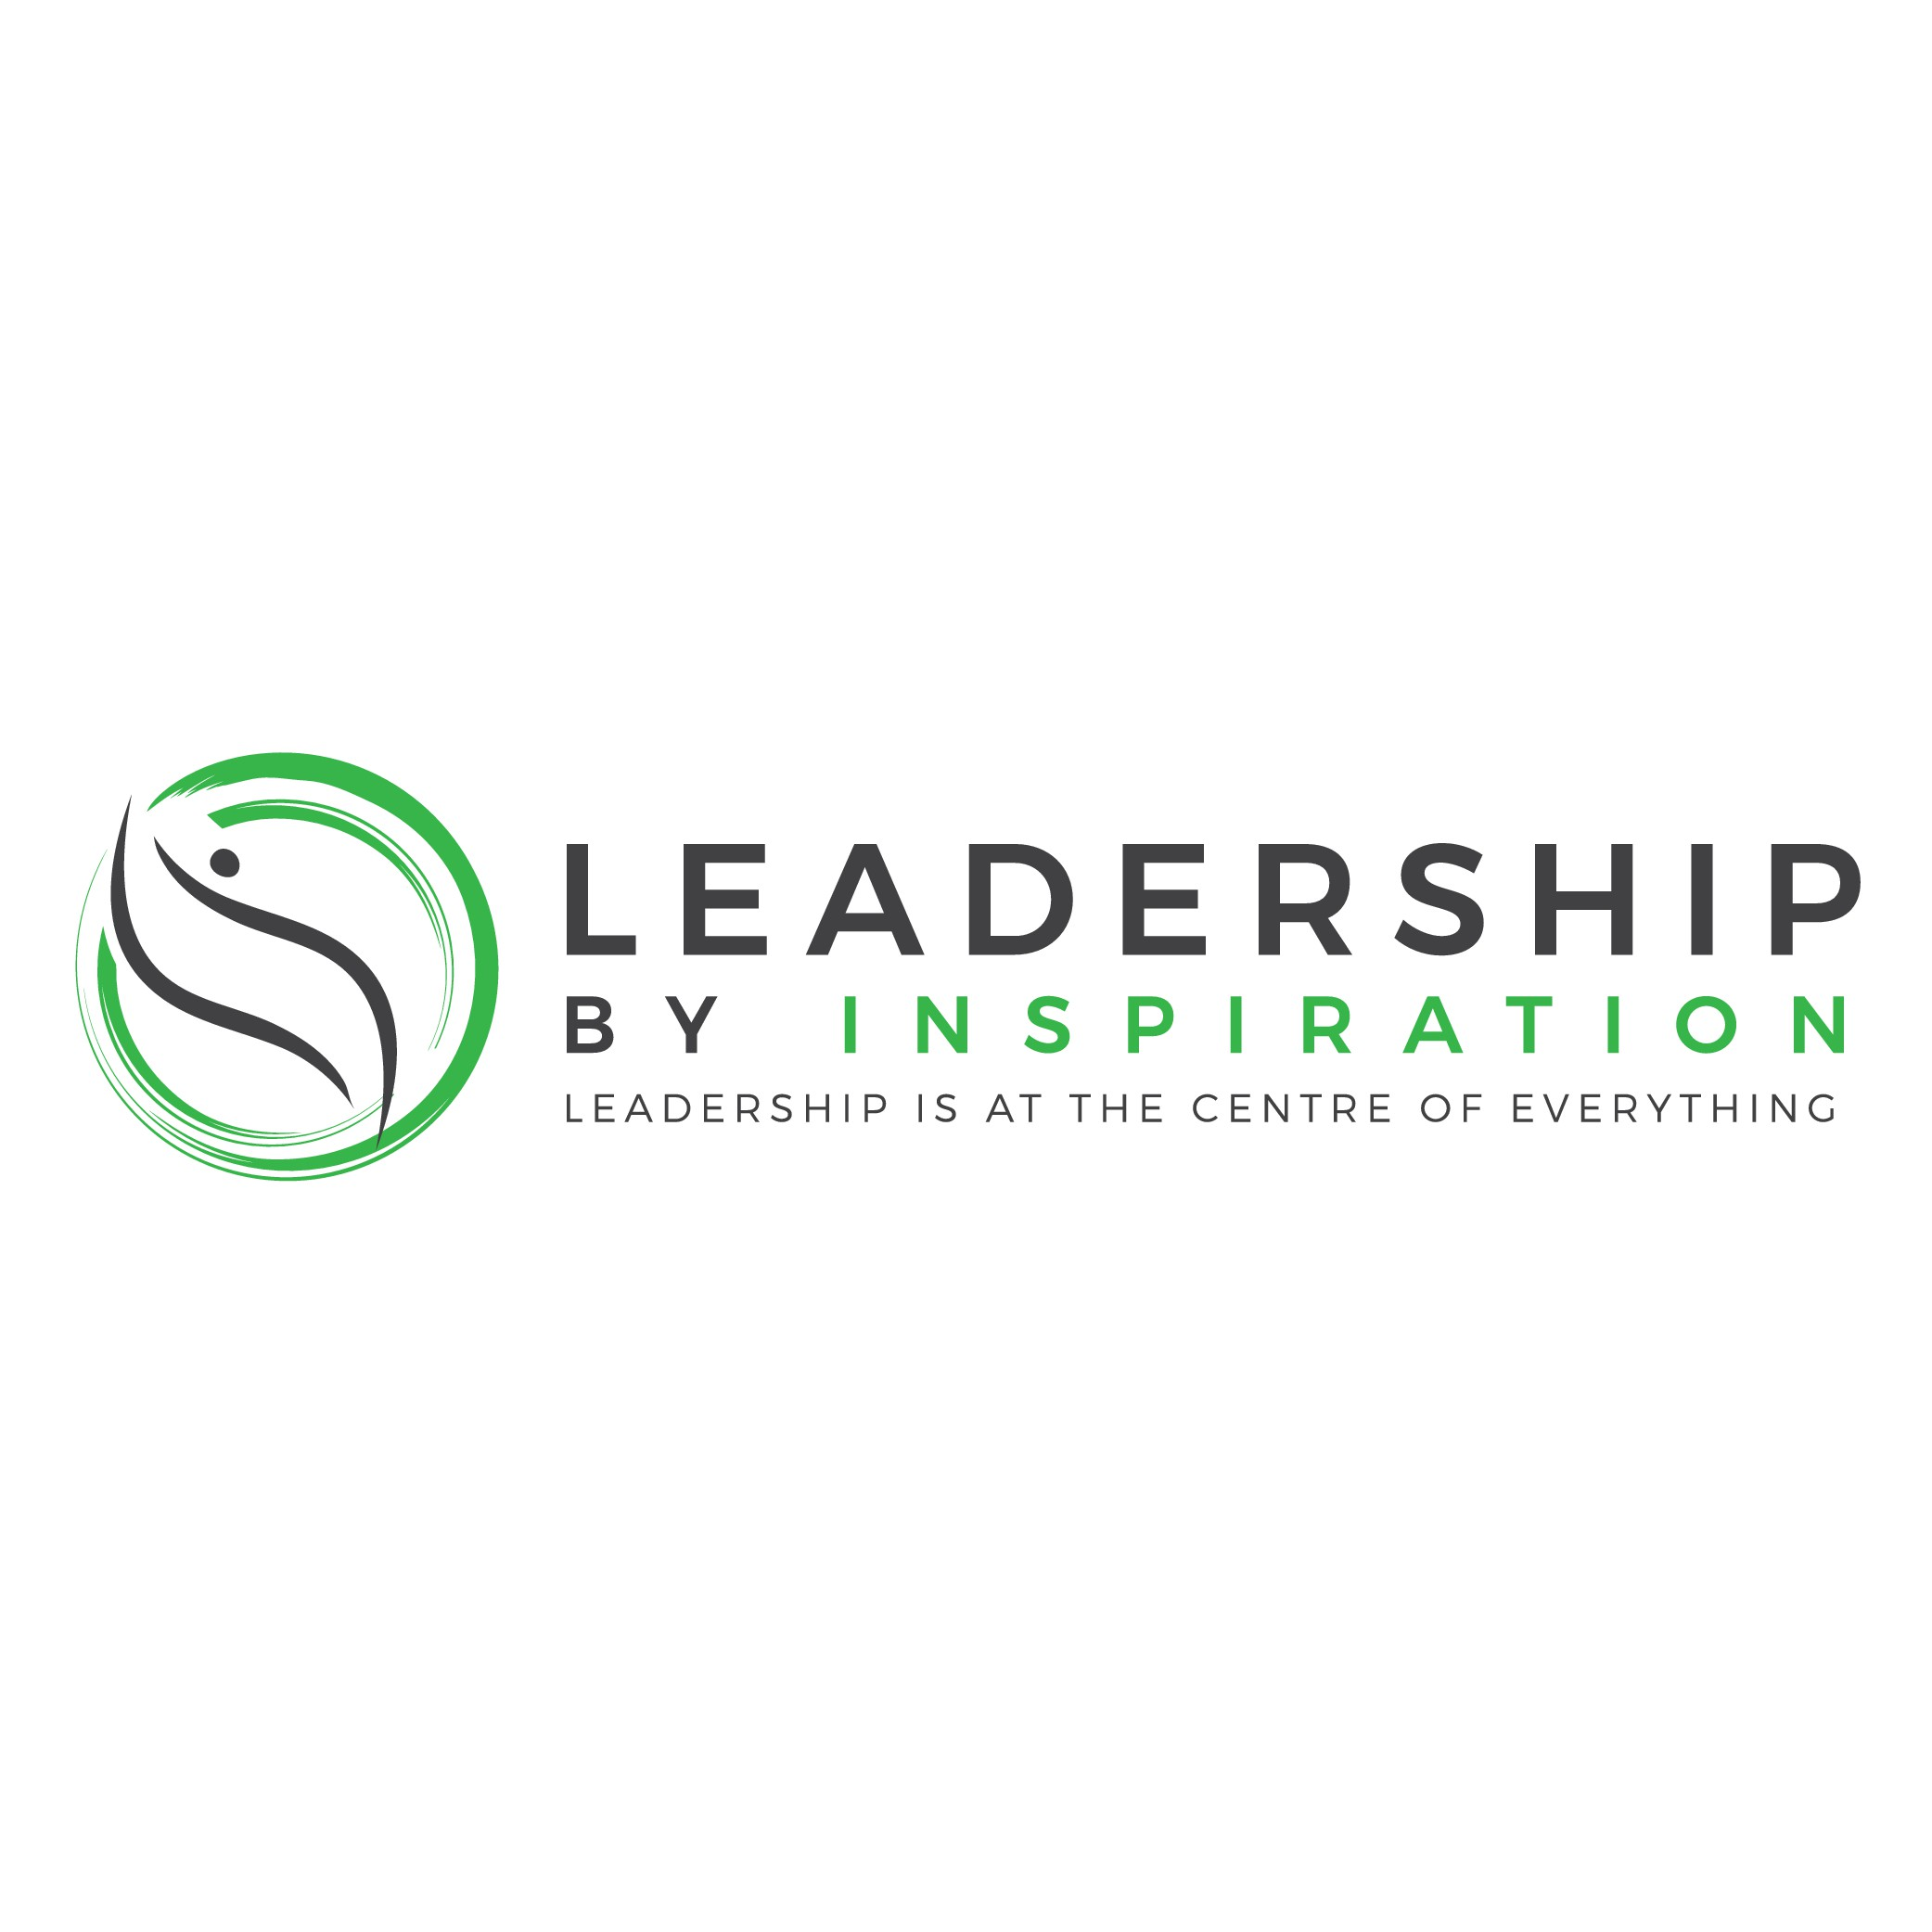 Inspirational logo to inspire leaders and teams in businesses